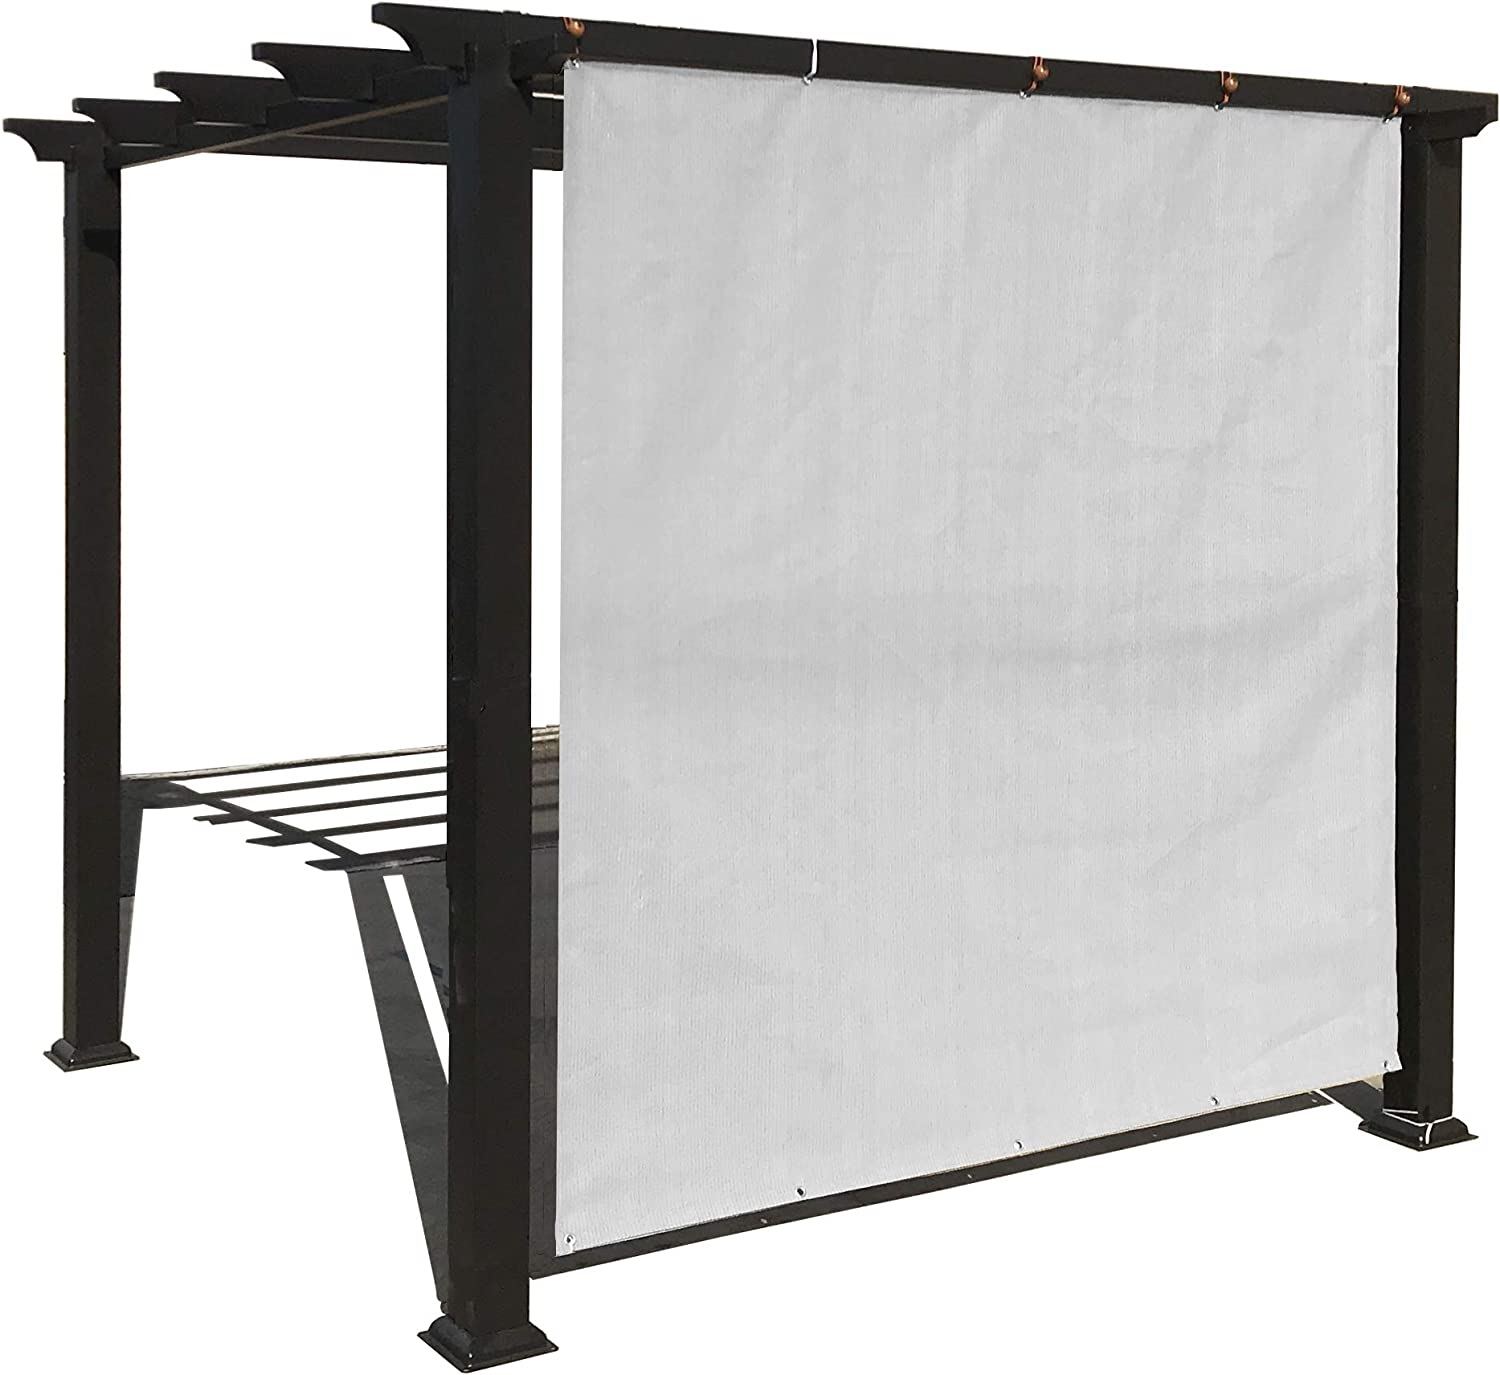 Alion Home Sun Shade Privacy Panel with Grommets on 2 Sides for Patio, Awning, Window, Pergola or Gazebo - Smoke Grey (8' x 5')